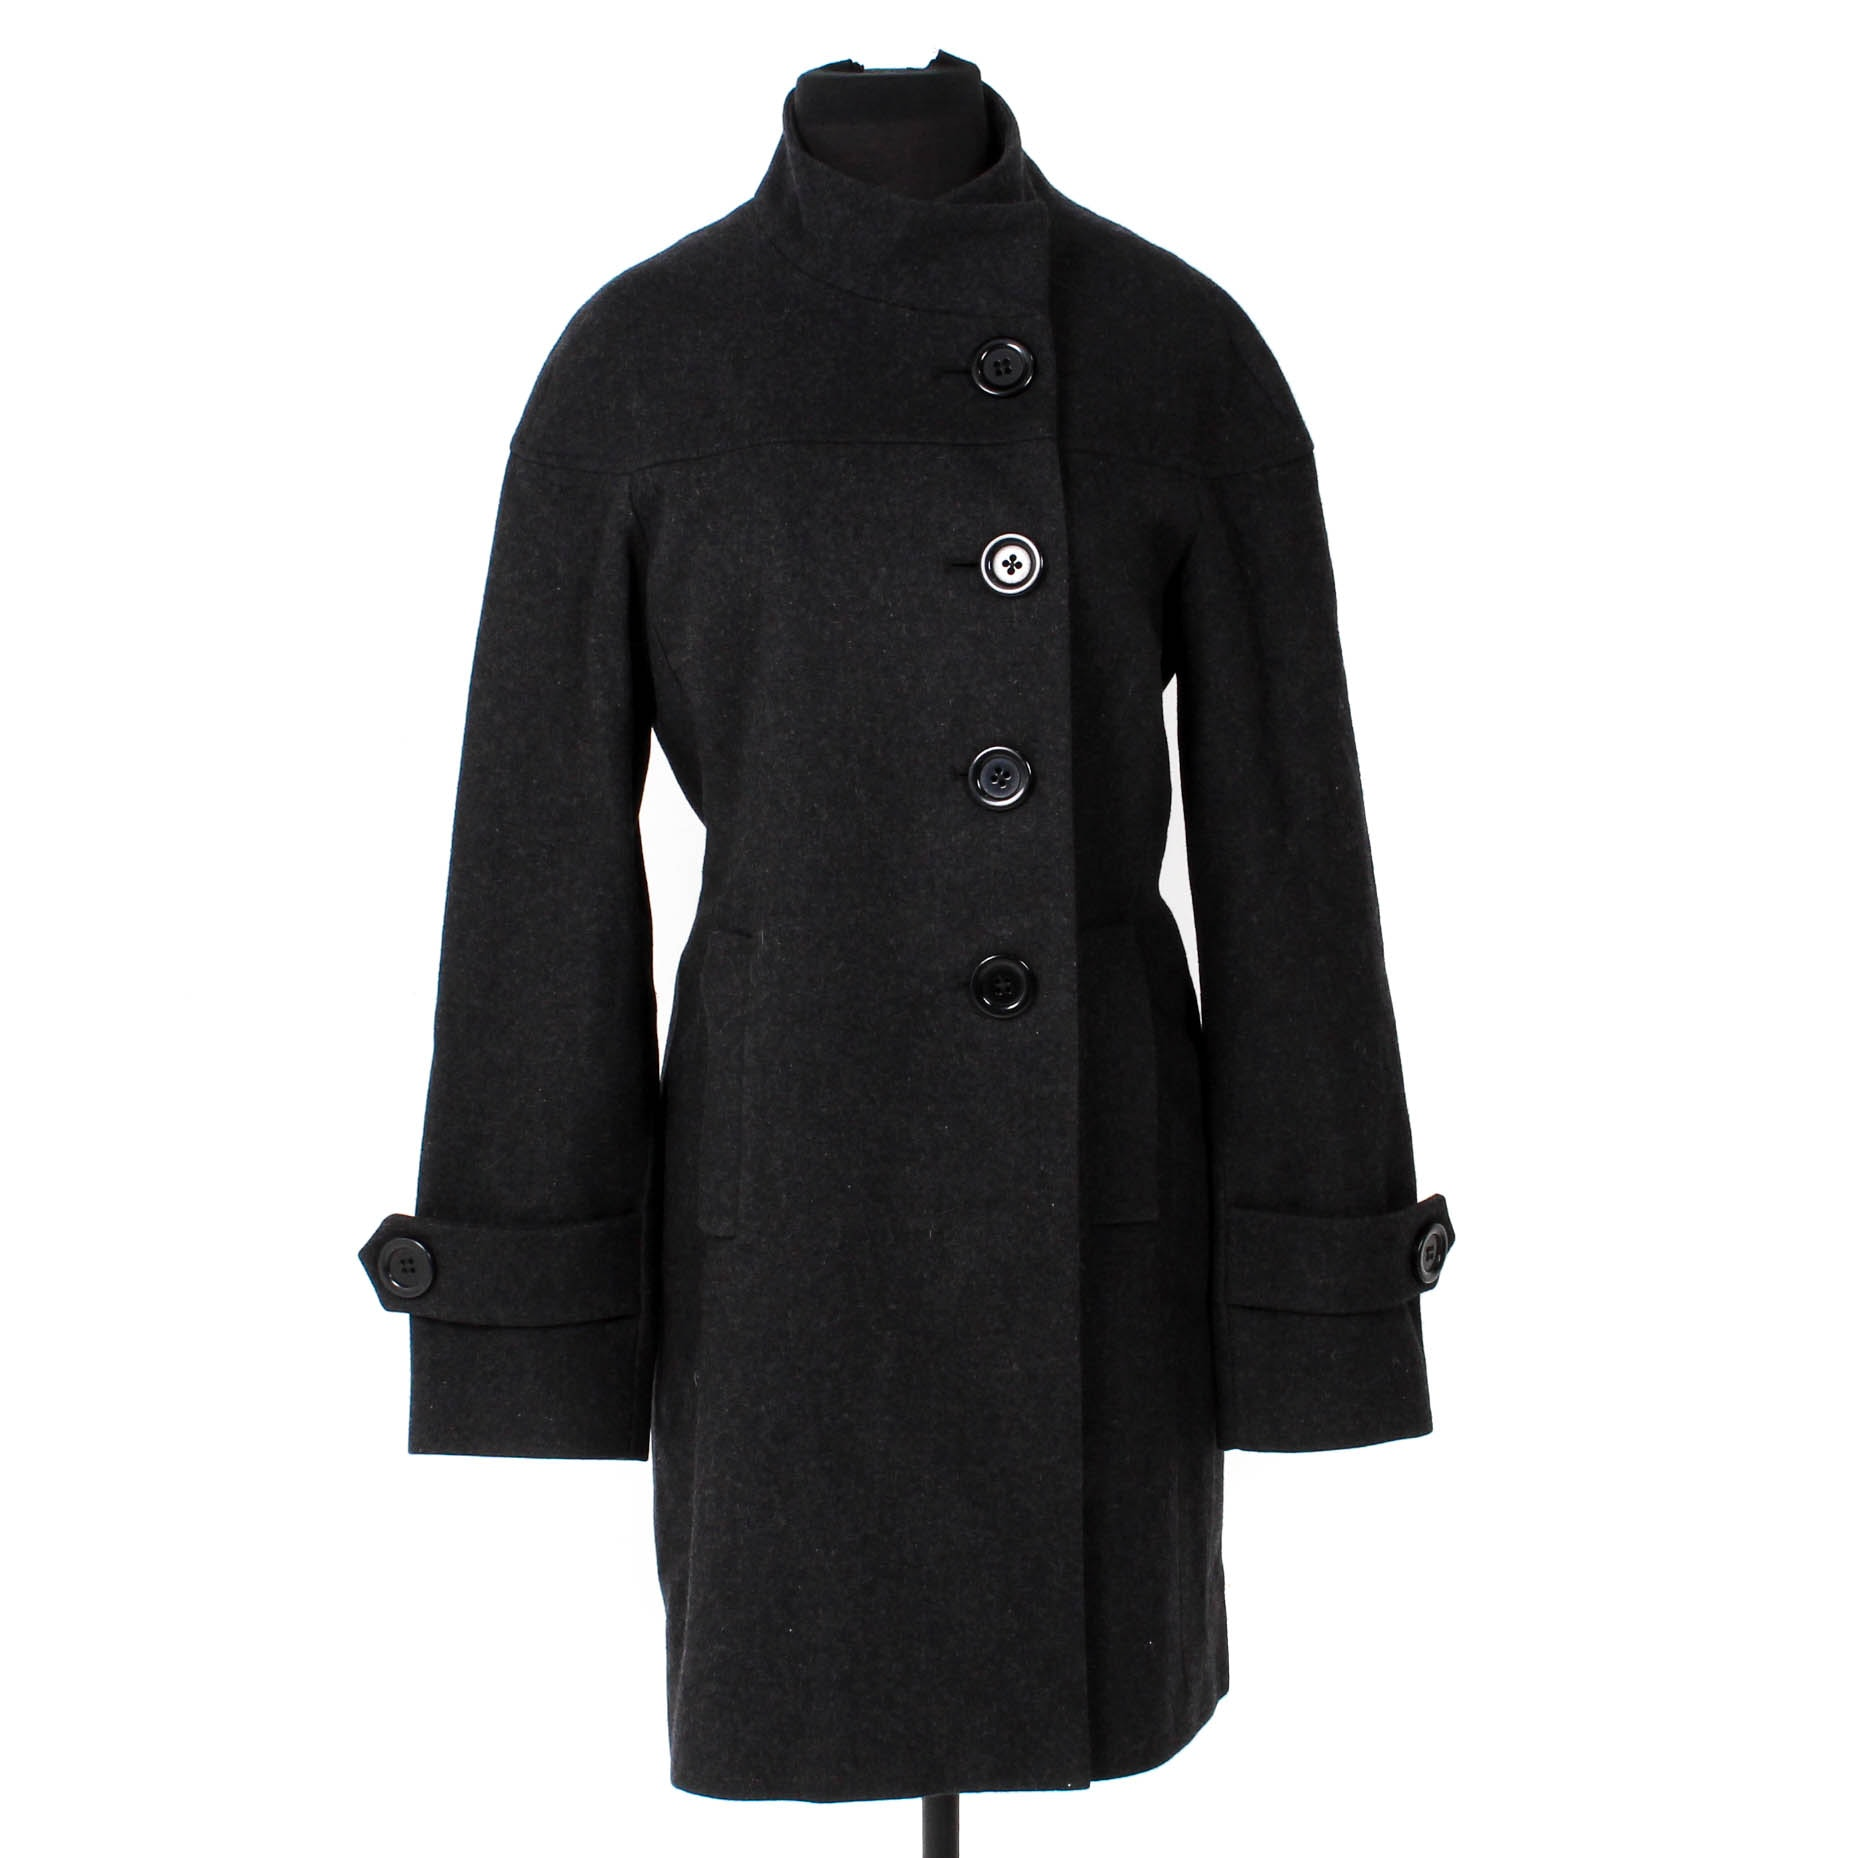 Bill Blass Charcoal Black Wool Coat